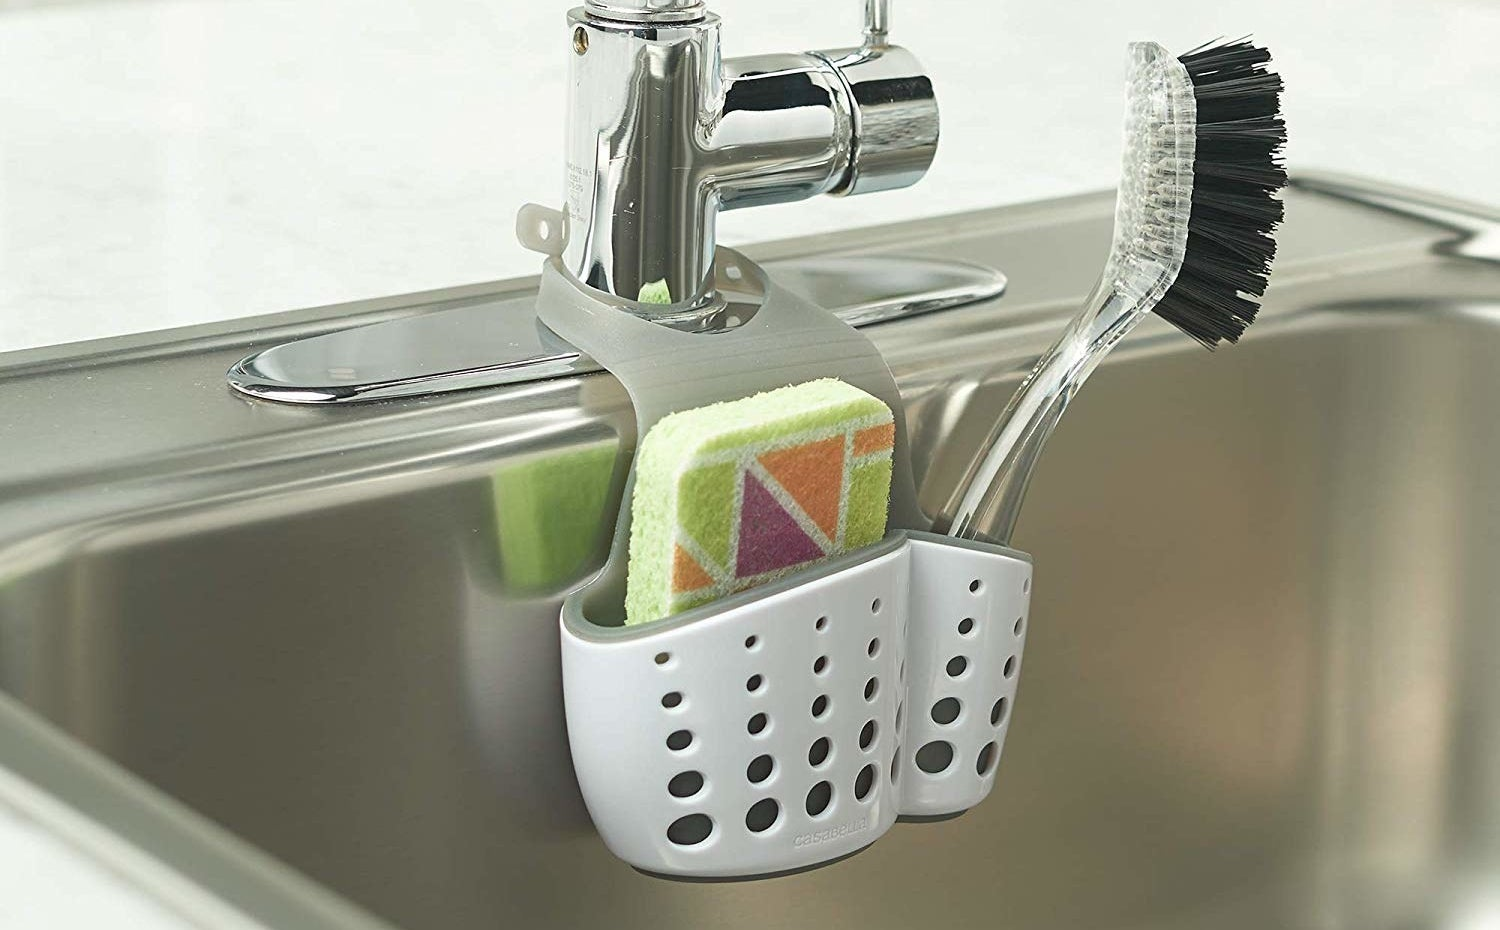 A white caddy hanging onto a sink, holding a sponge and a dish-scrubbing brush